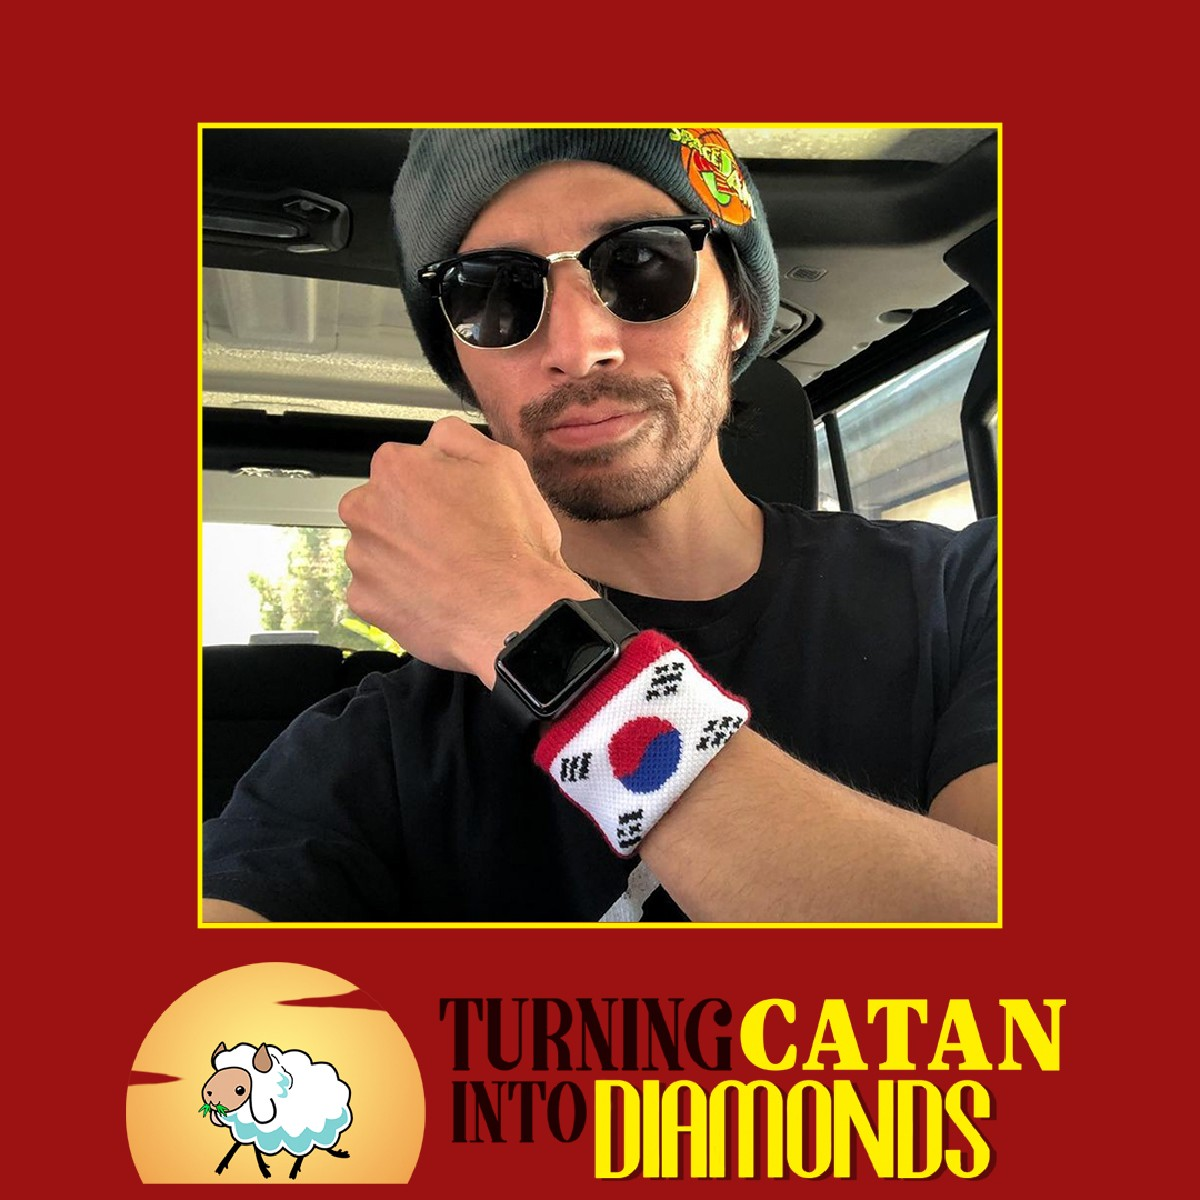 test Twitter Media - Don't miss out on a good laugh with @GEGGHEAD's Jon Lee Brody and his hilarious CATAN stories. Check out @iamgerardcole'slatest episode of the @TCIDPodcasthere 👉 https://t.co/FmEmJhtIzC #catan #settlersofcatan #podcast https://t.co/TGhNWdPa5h